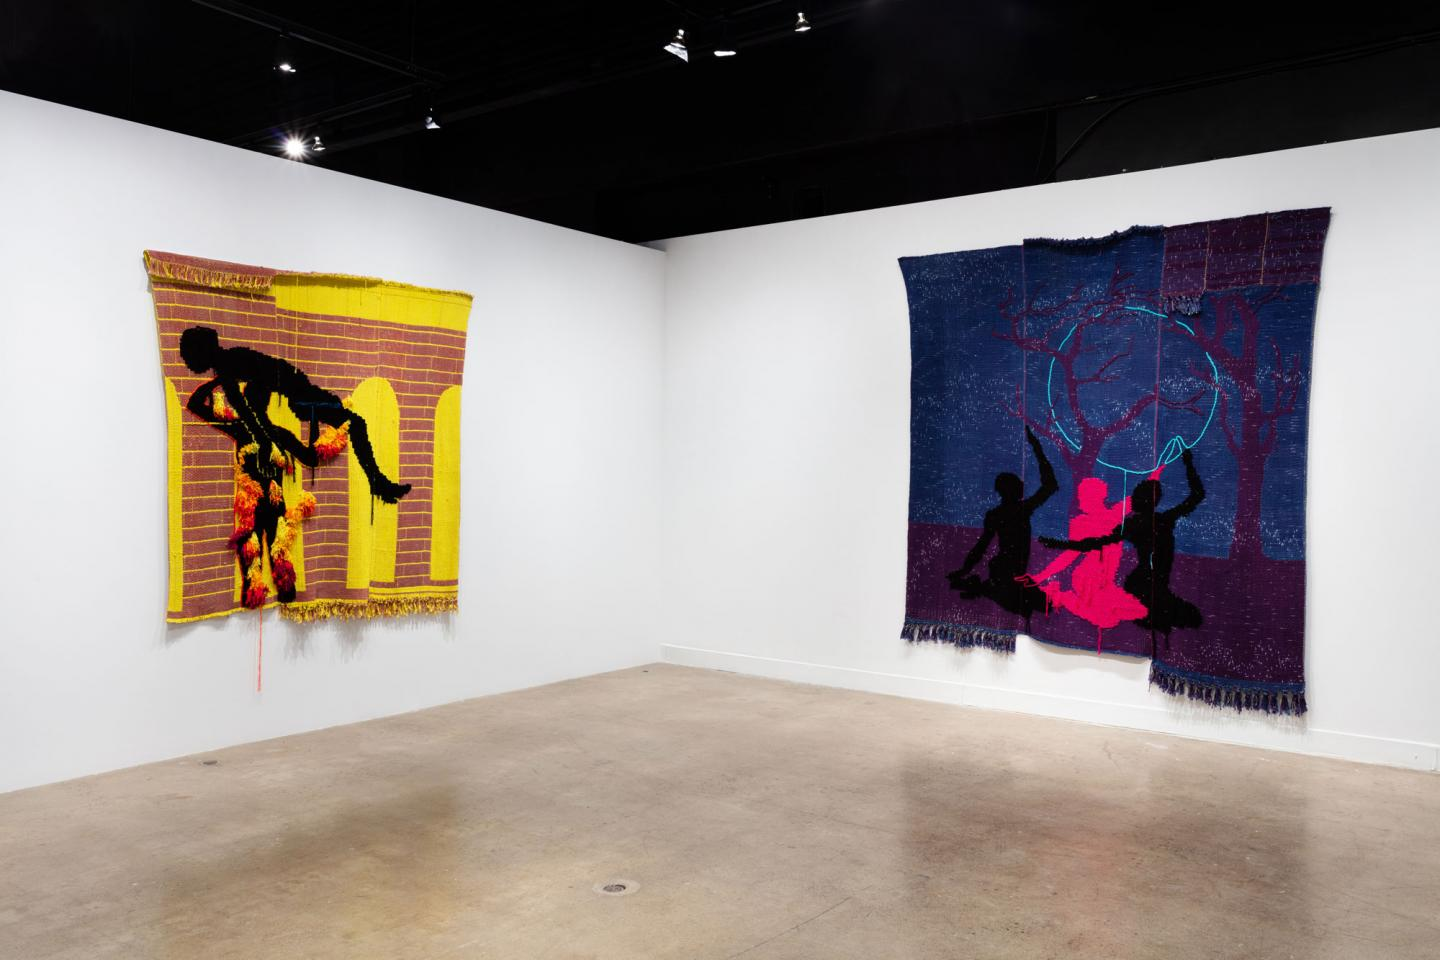 Installation view of Diedrick Brackens: shape of a fever believer, 2021. Left: fire makes some dragons, 2020, woven cotton and acrylic yarn. Right: flying geese, 2020, woven cotton and acrylic yarn. Photo: Laura Findlay.